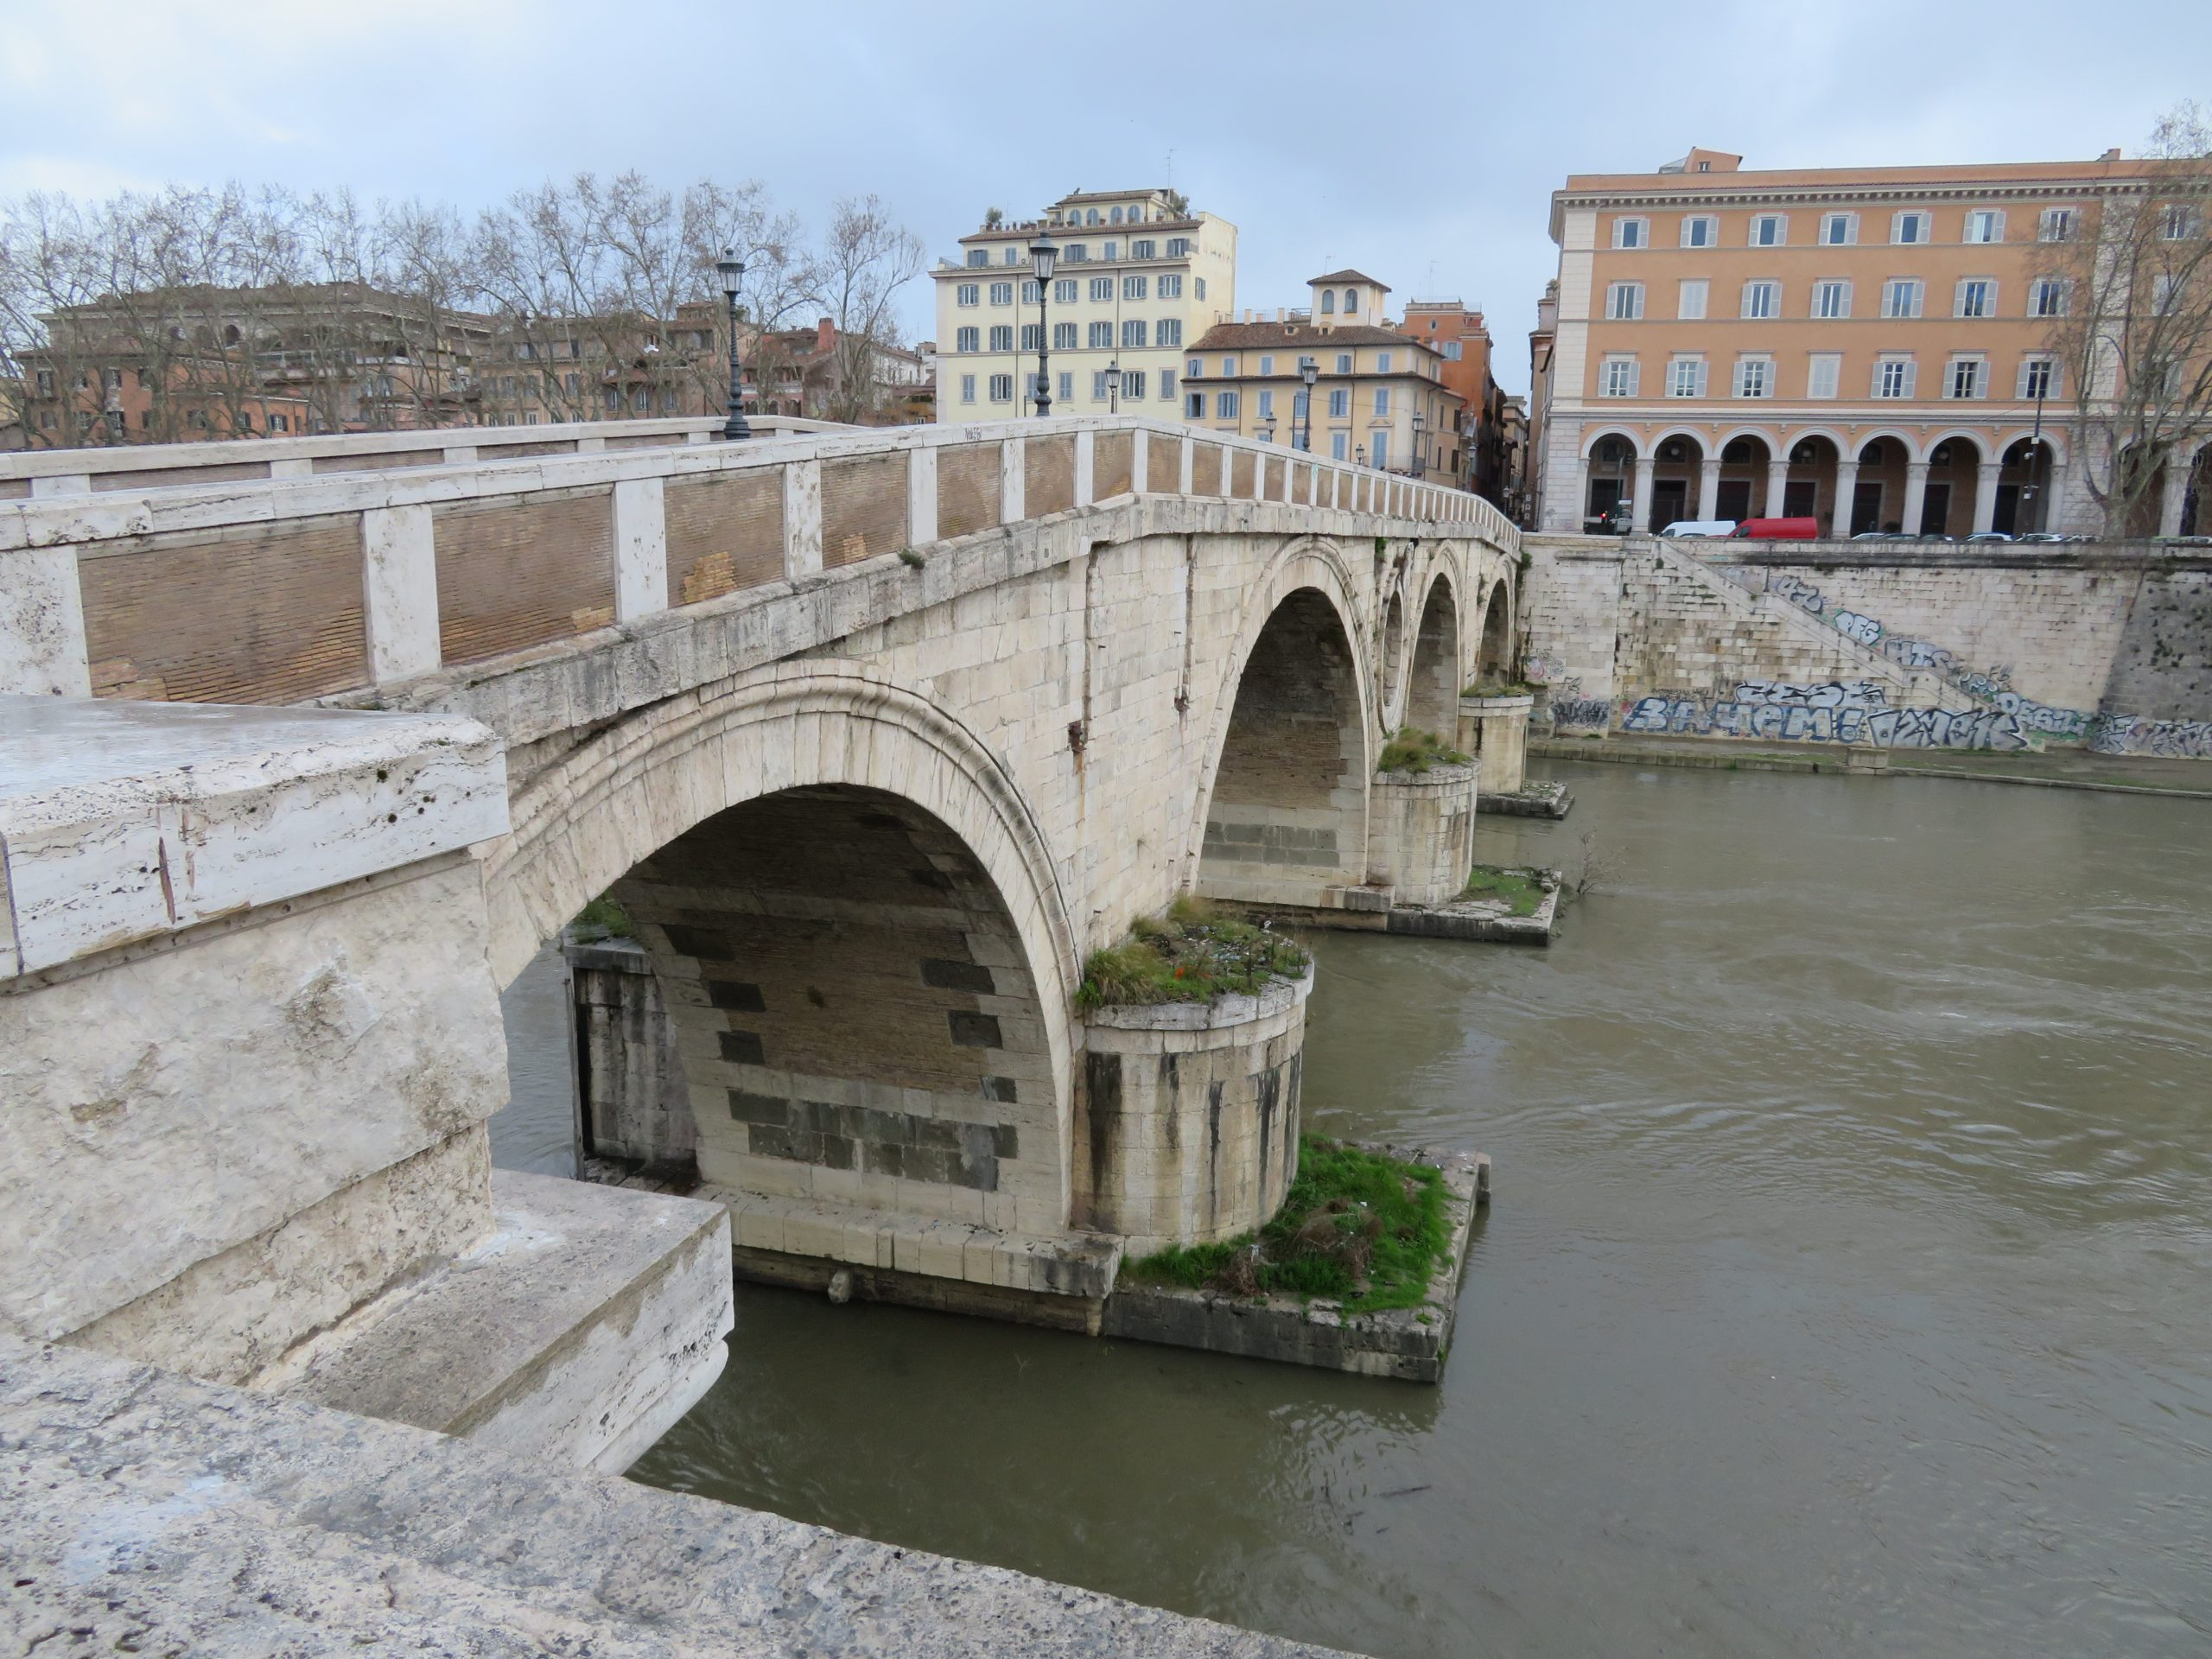 Sixtus's bridge from the late 1400s connecting Trastevere to Rome's center